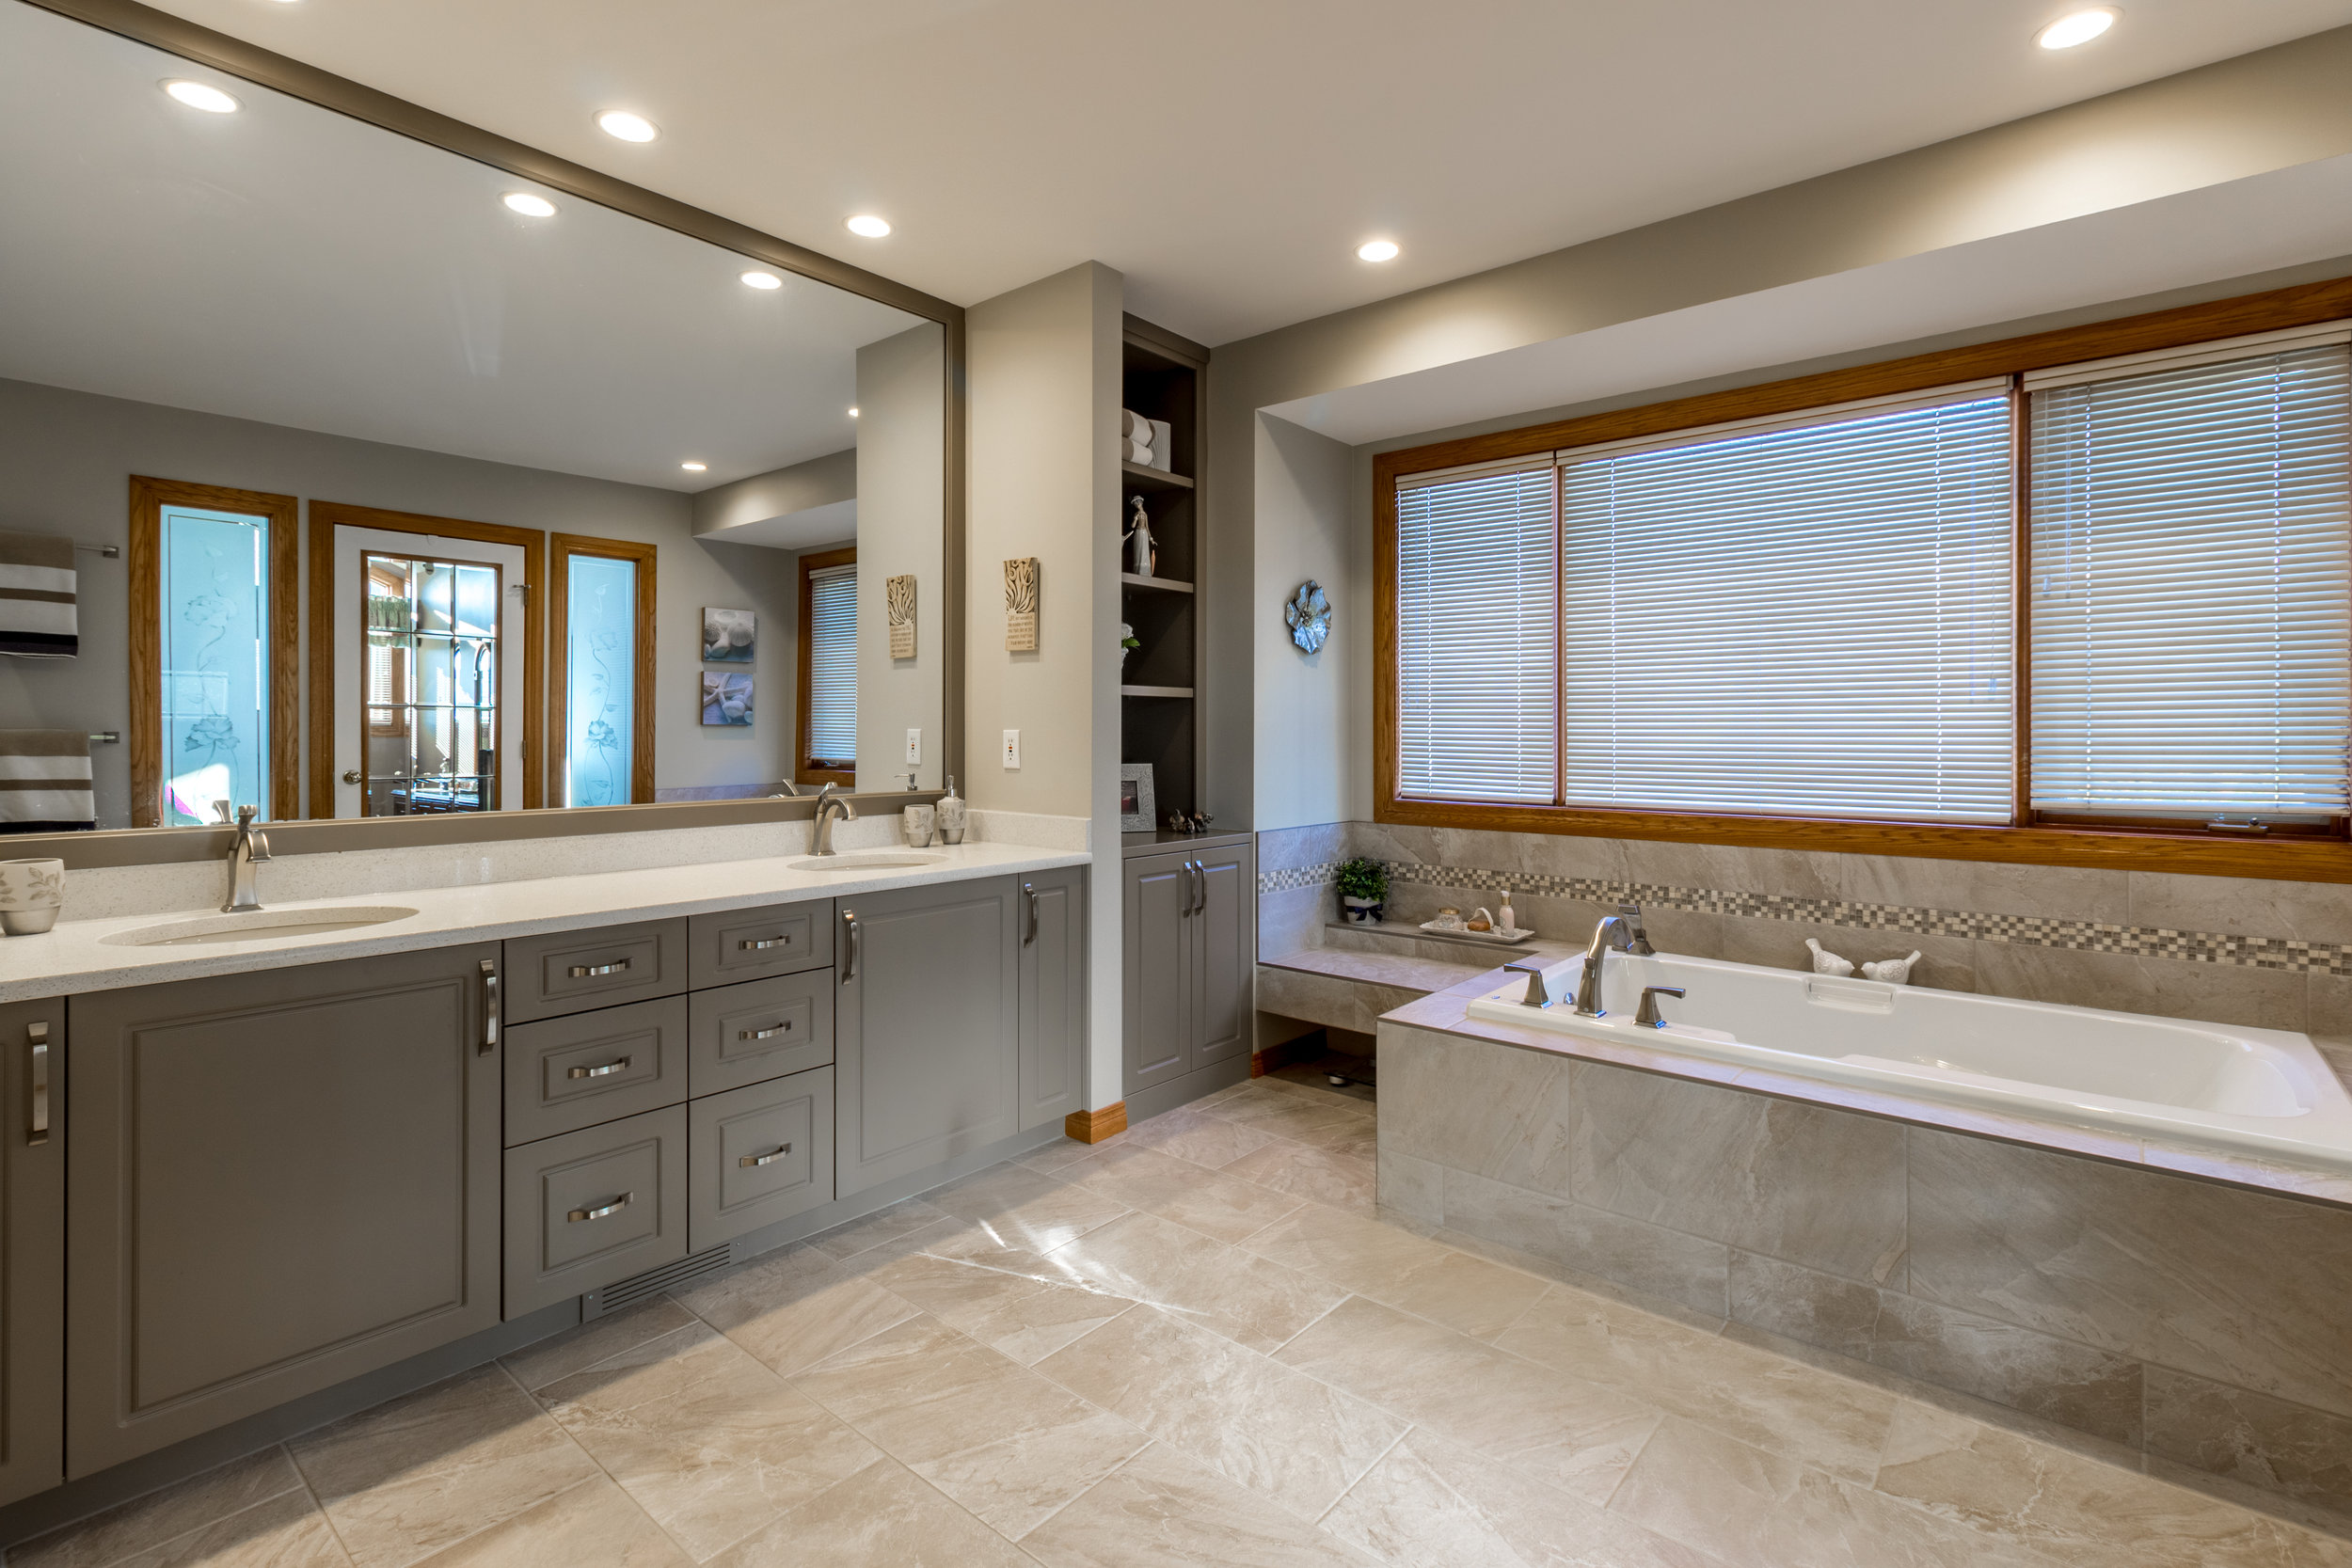 Bathroom Renovation in the Calgary community of Scenic Acres